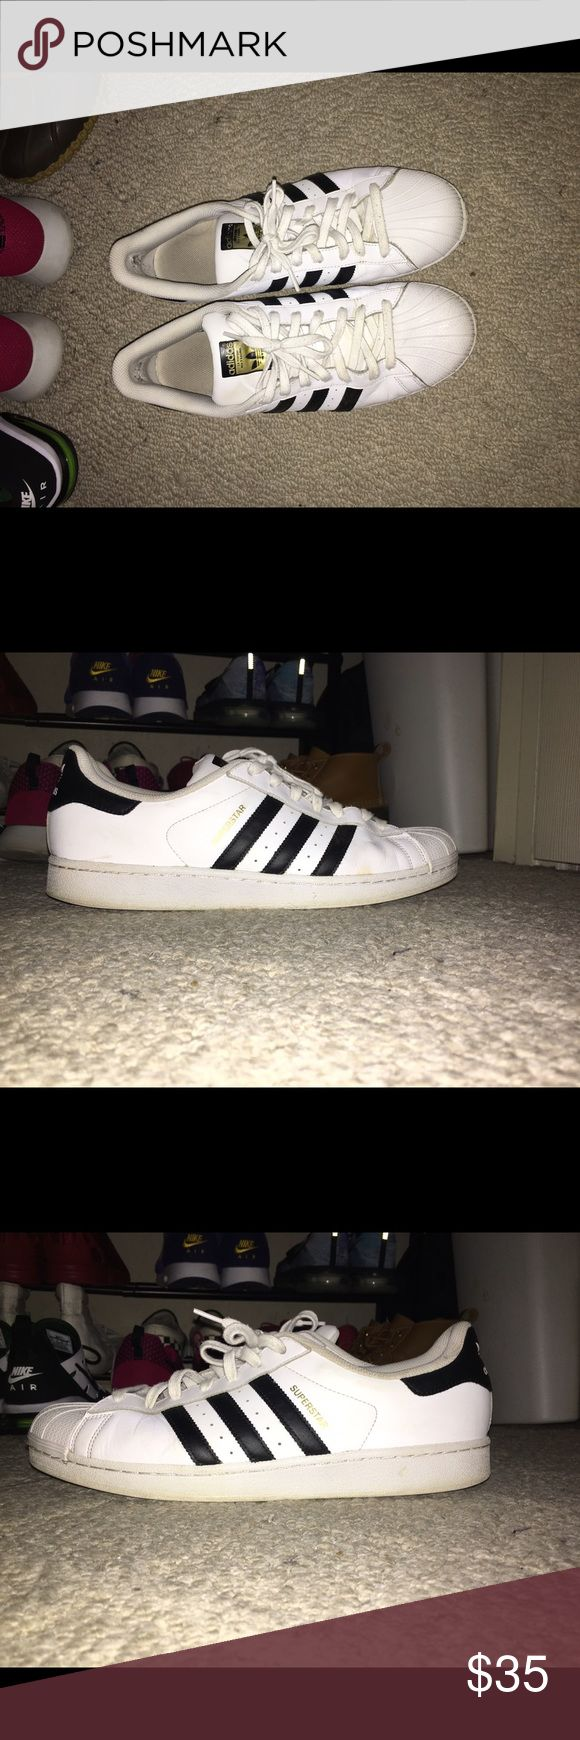 Mens Adidas Superstar Reliable shoe and really great shoe to have Shoes Sneakers